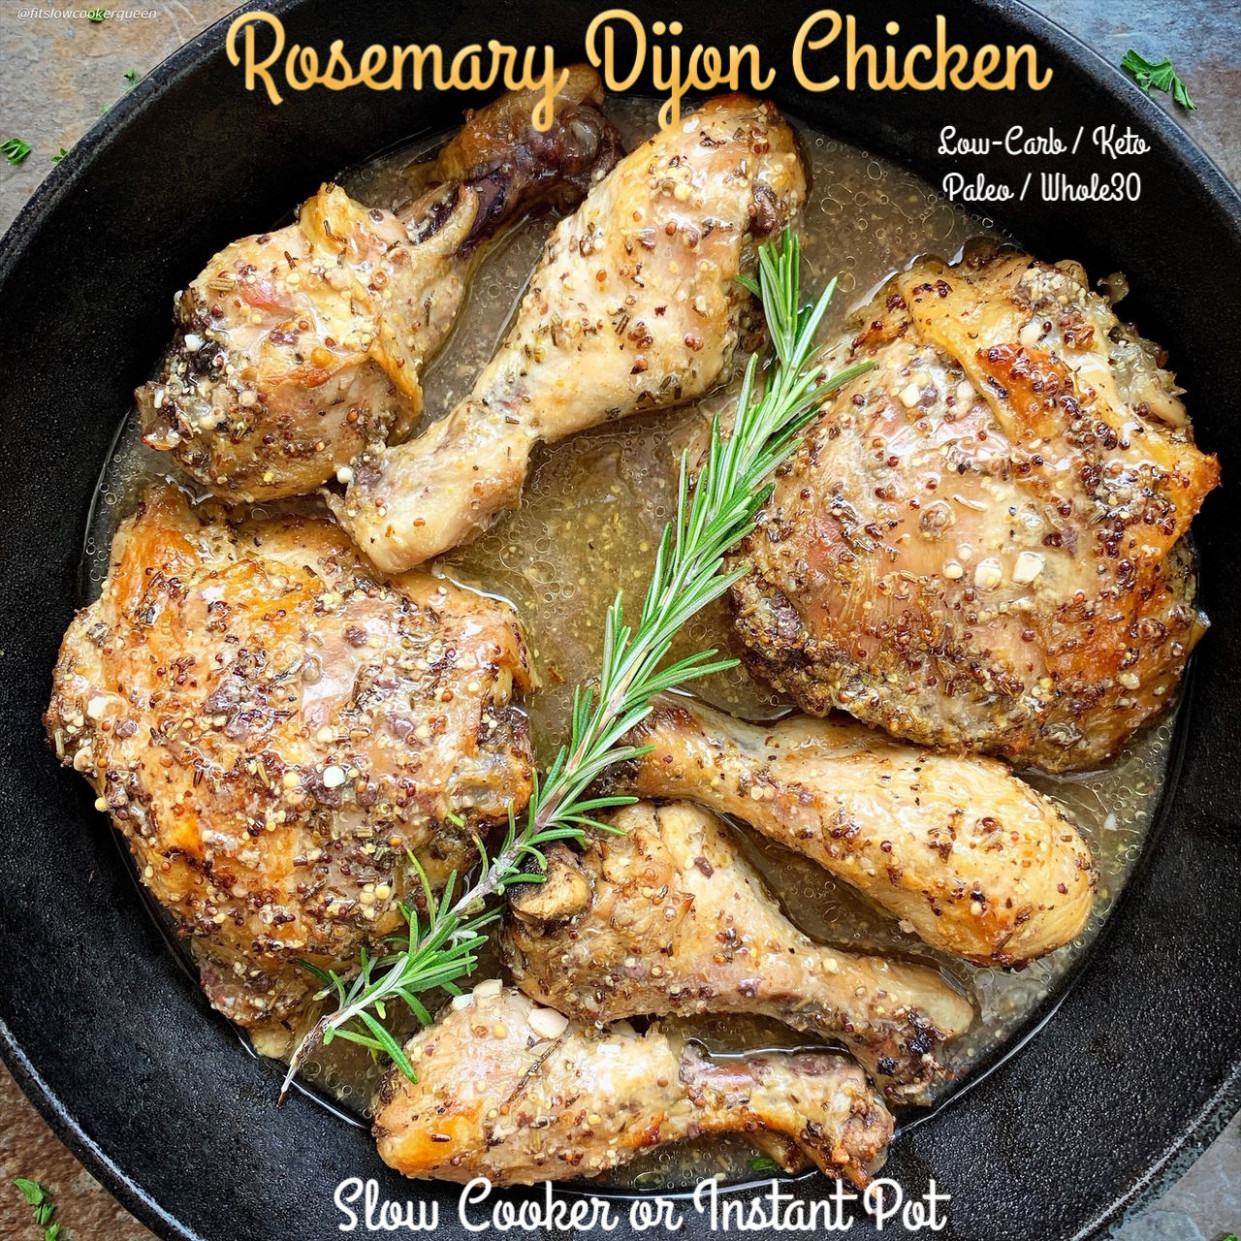 Slow Cooker/Instant Pot Rosemary Dijon Chicken (Low-Carb, Paleo/Whole11) - rosemary recipes chicken